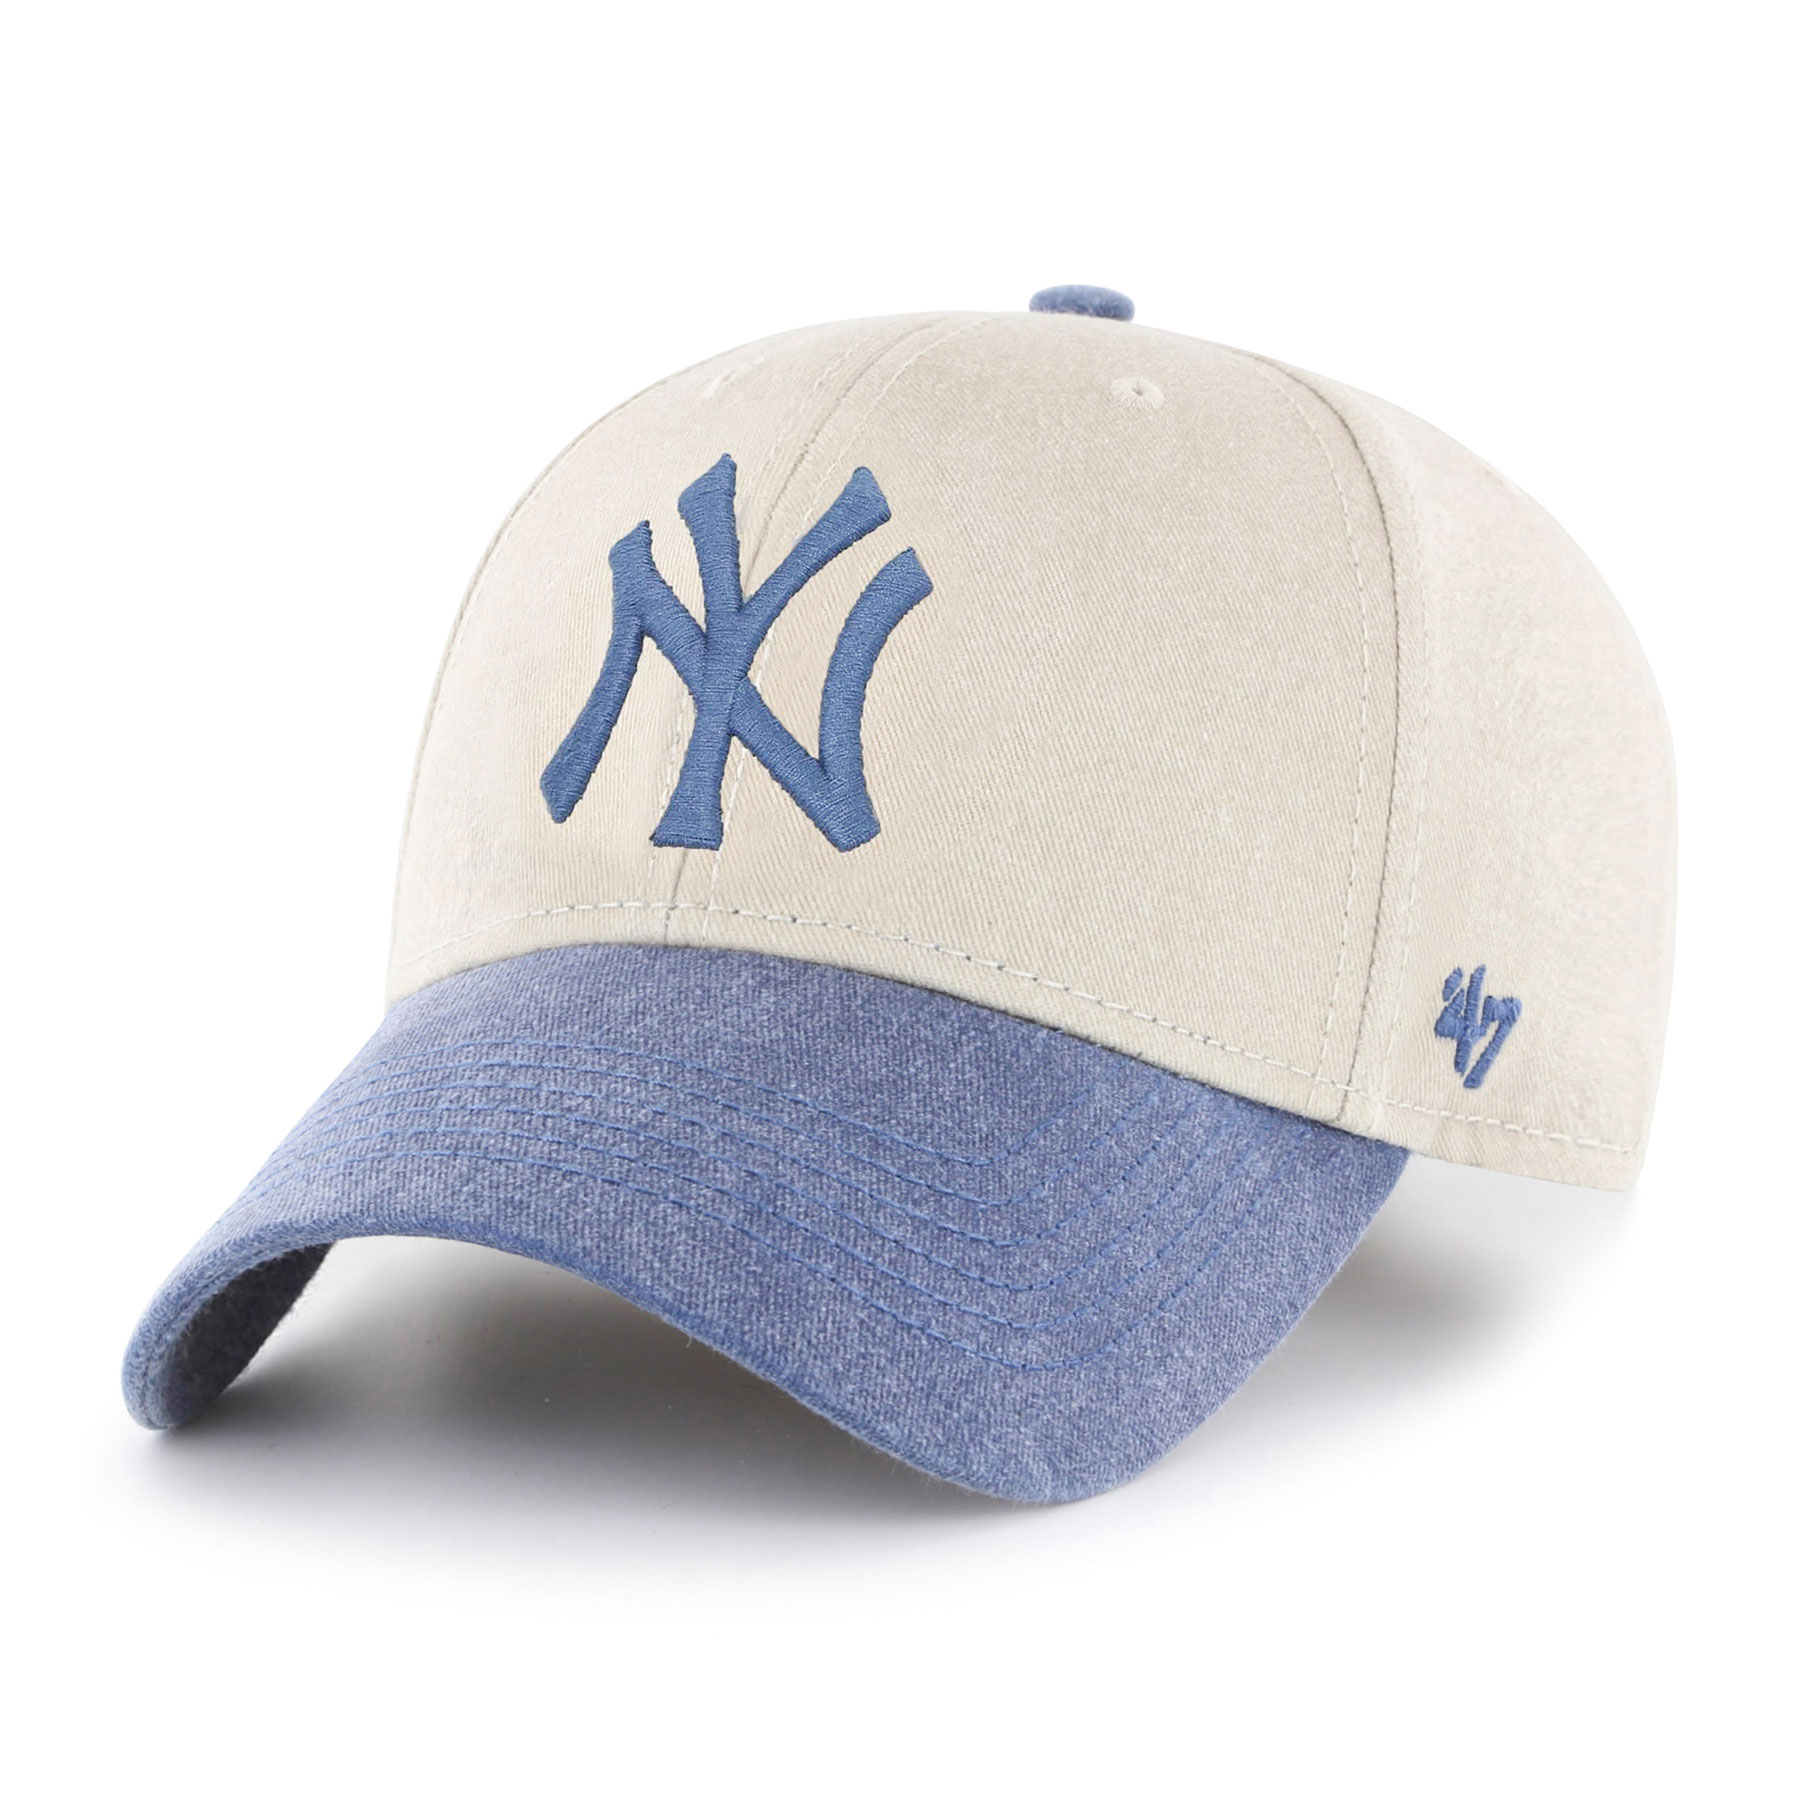 New York Yankees  47 MVP Field View Cap  3bbaac04216